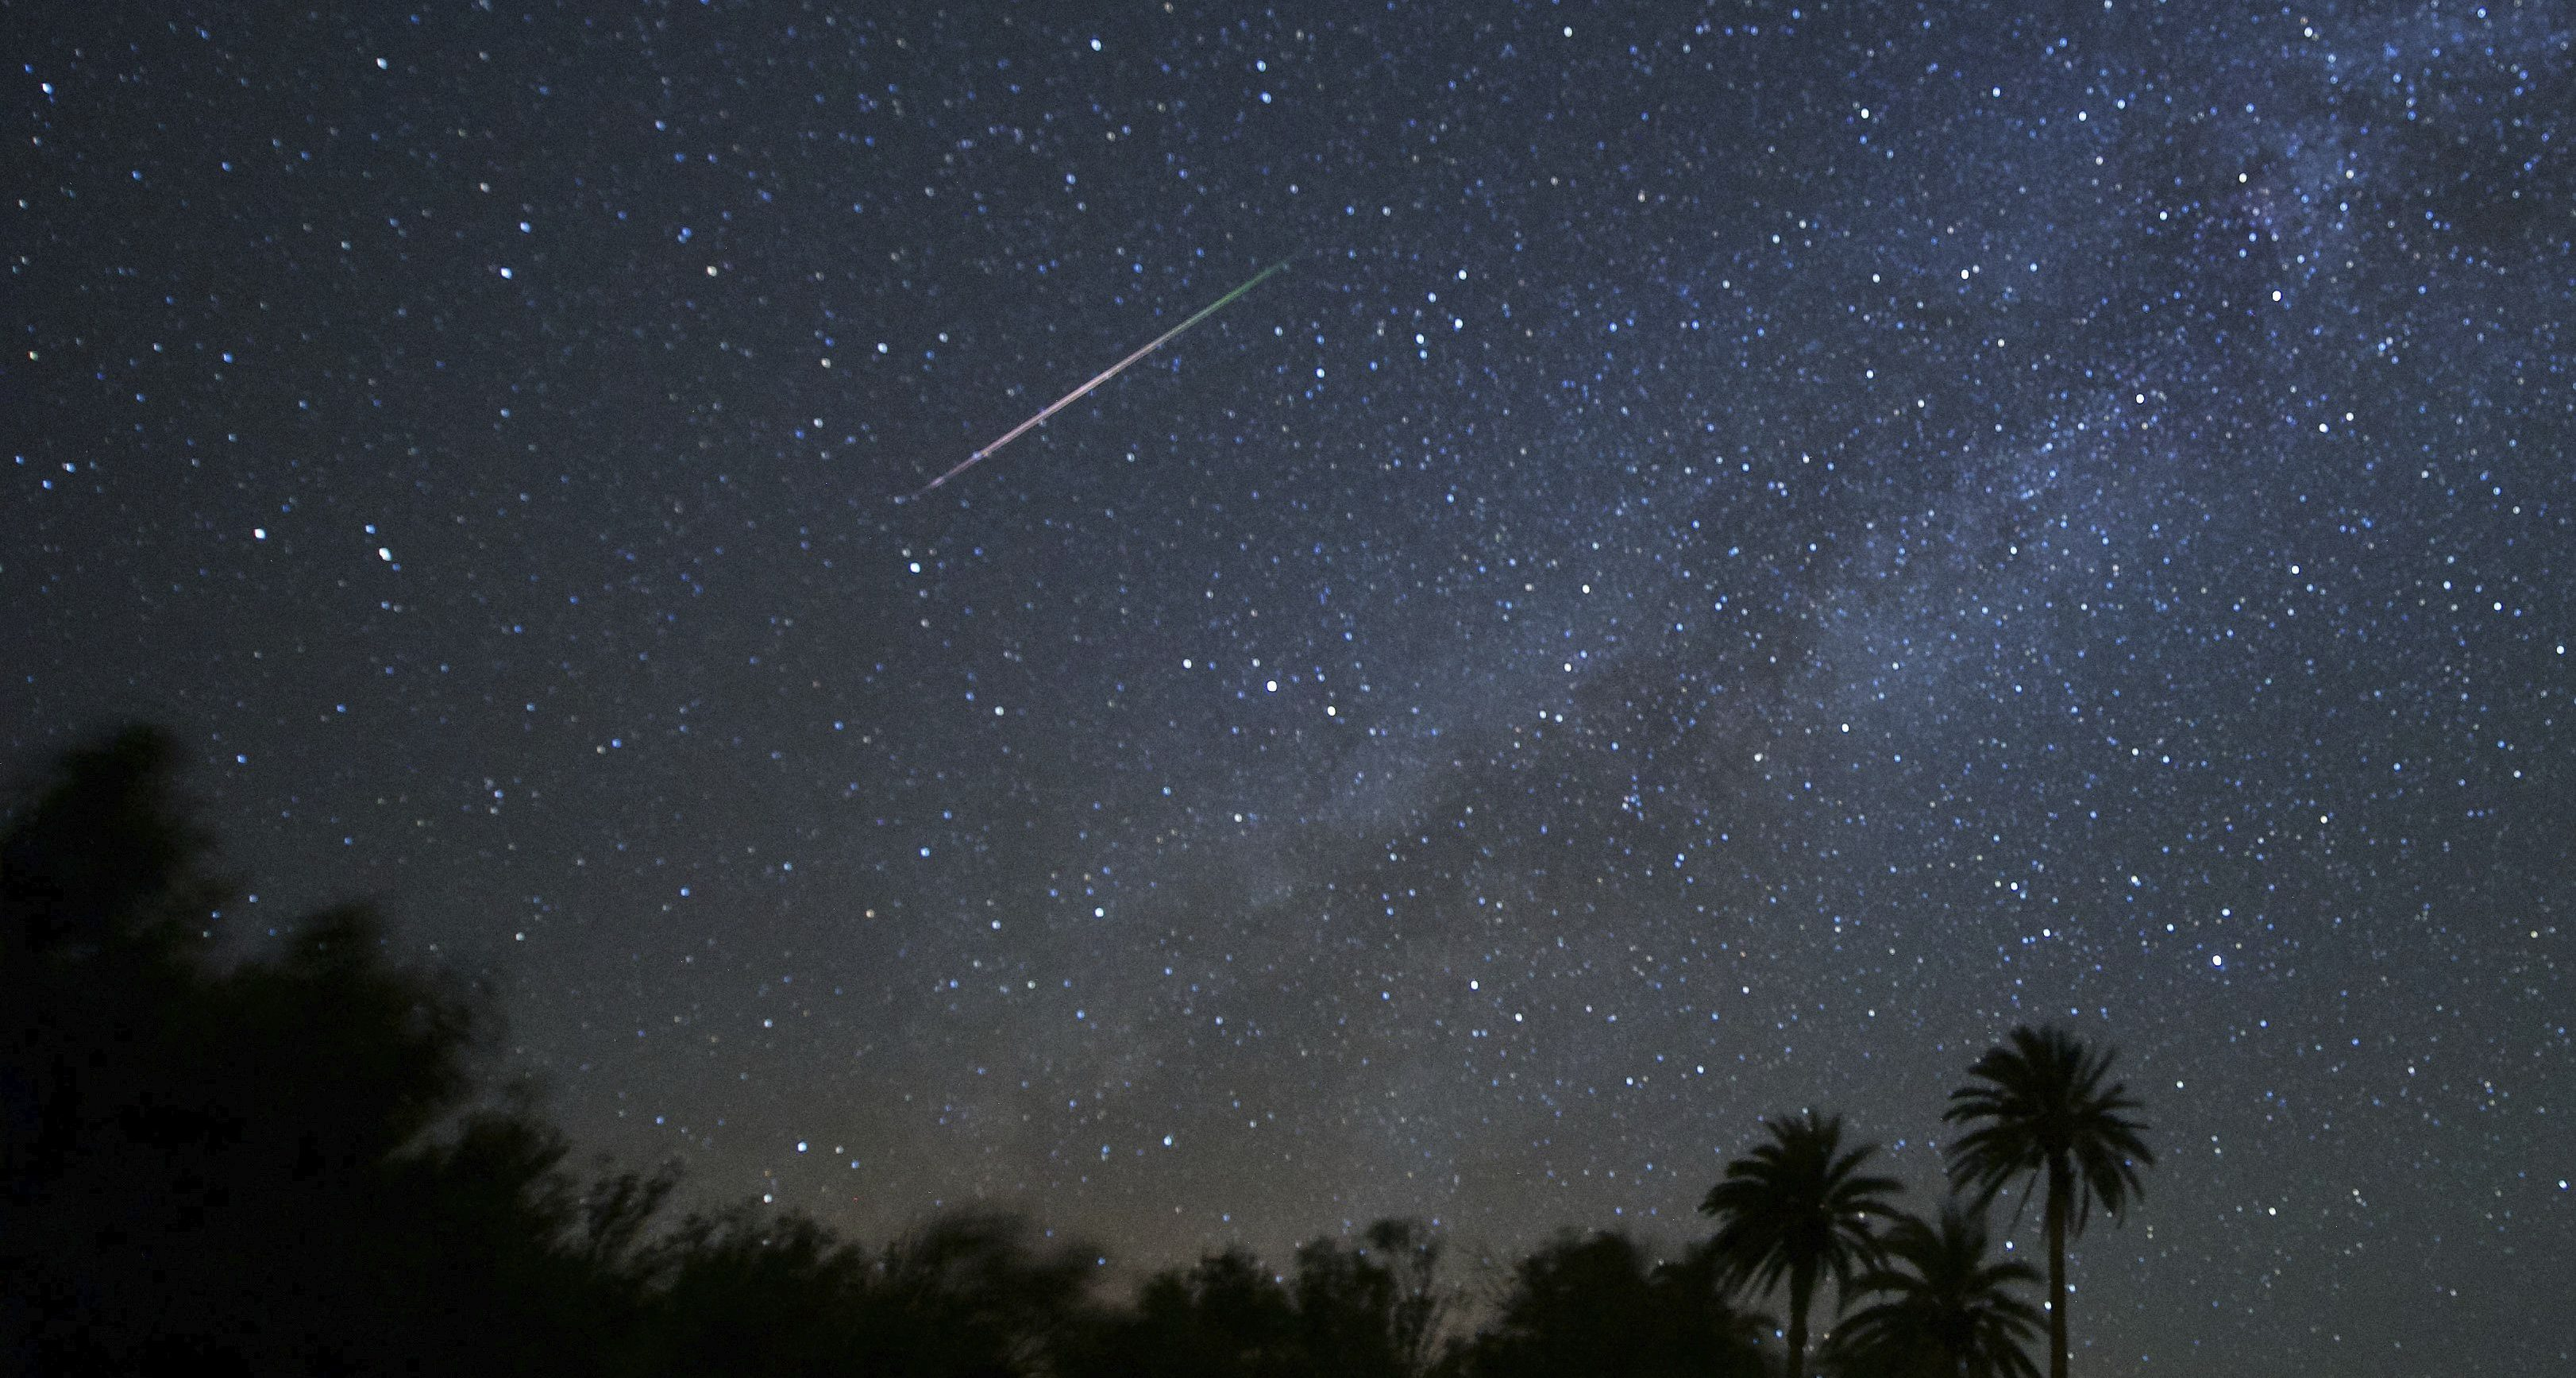 The Next Two Days Are Best Time To Watch Leonid Meteor Shower